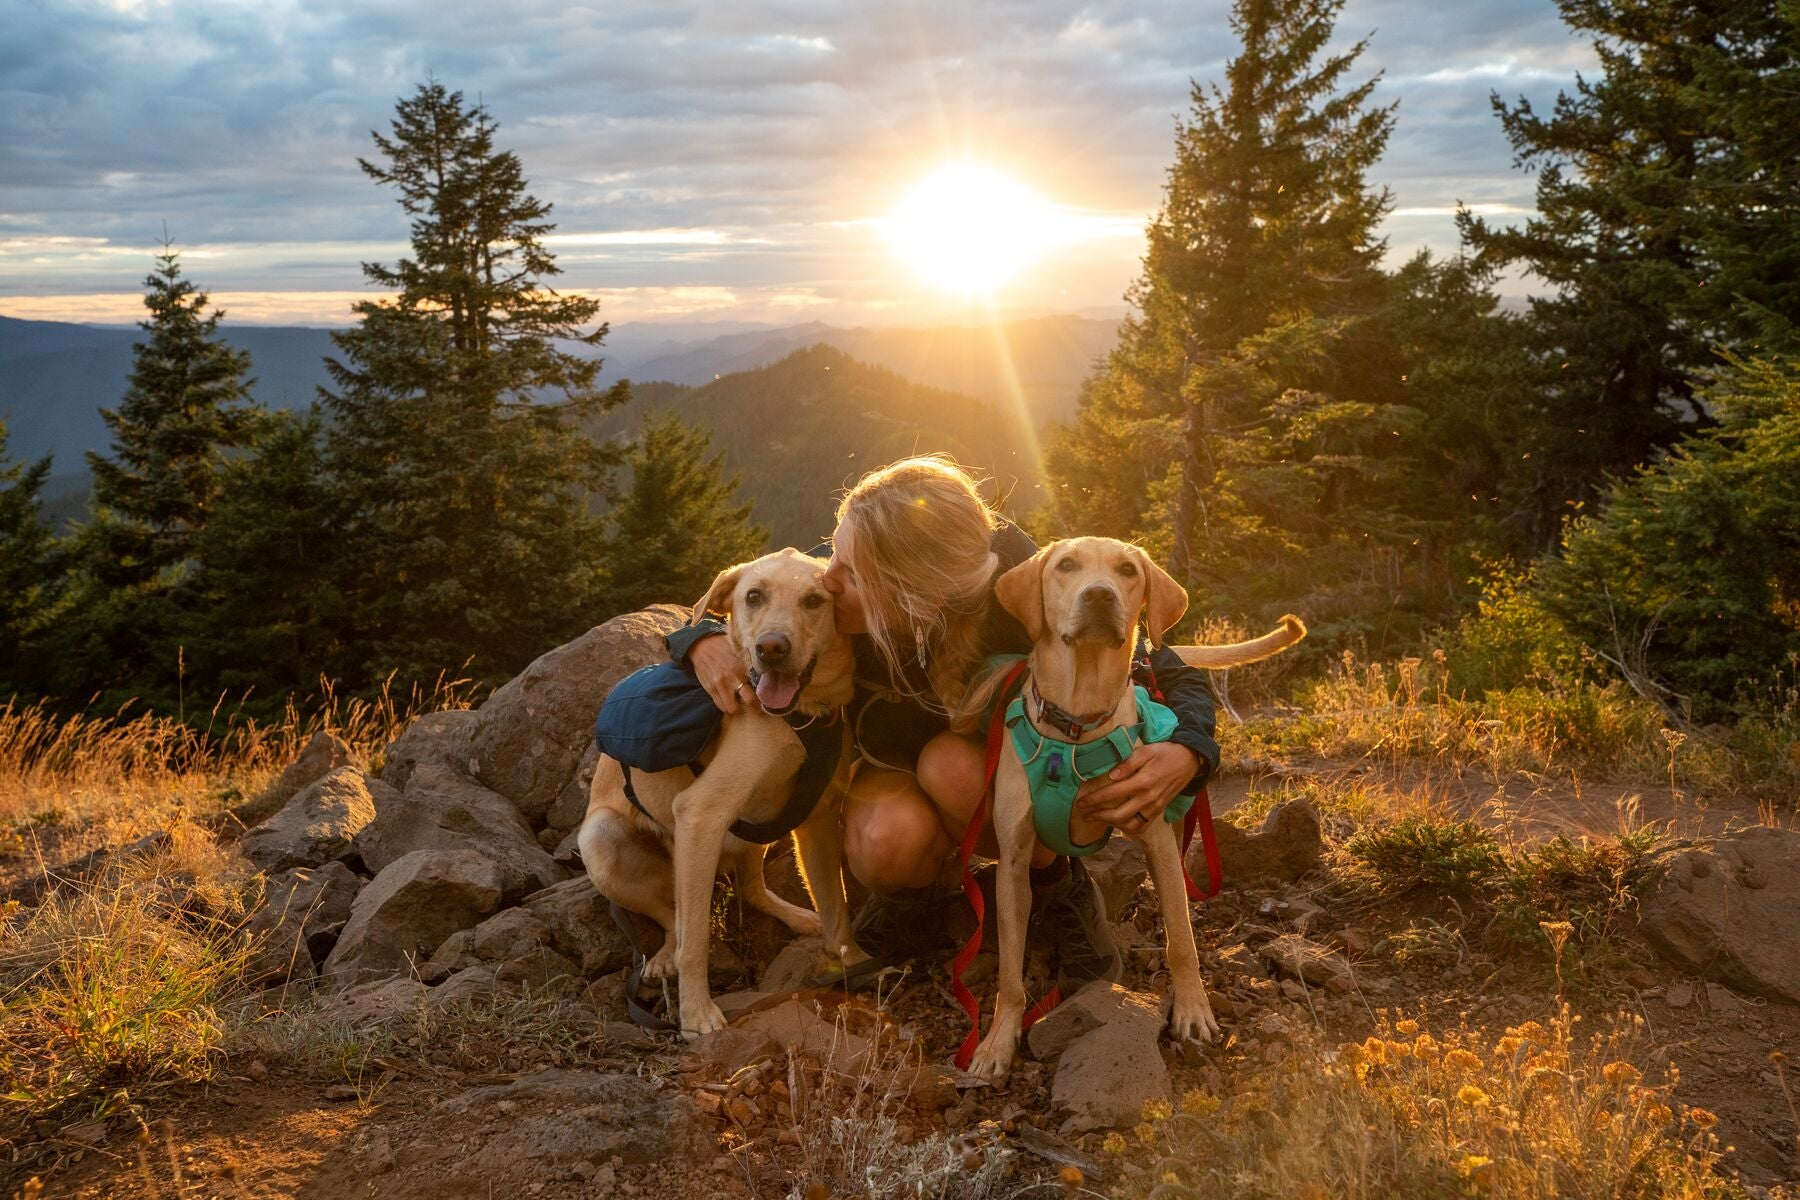 Ruffwear Switchback Harness & Front Range Dog Harness. Two Labradors wearing them and cuddling their owner in a sunset.